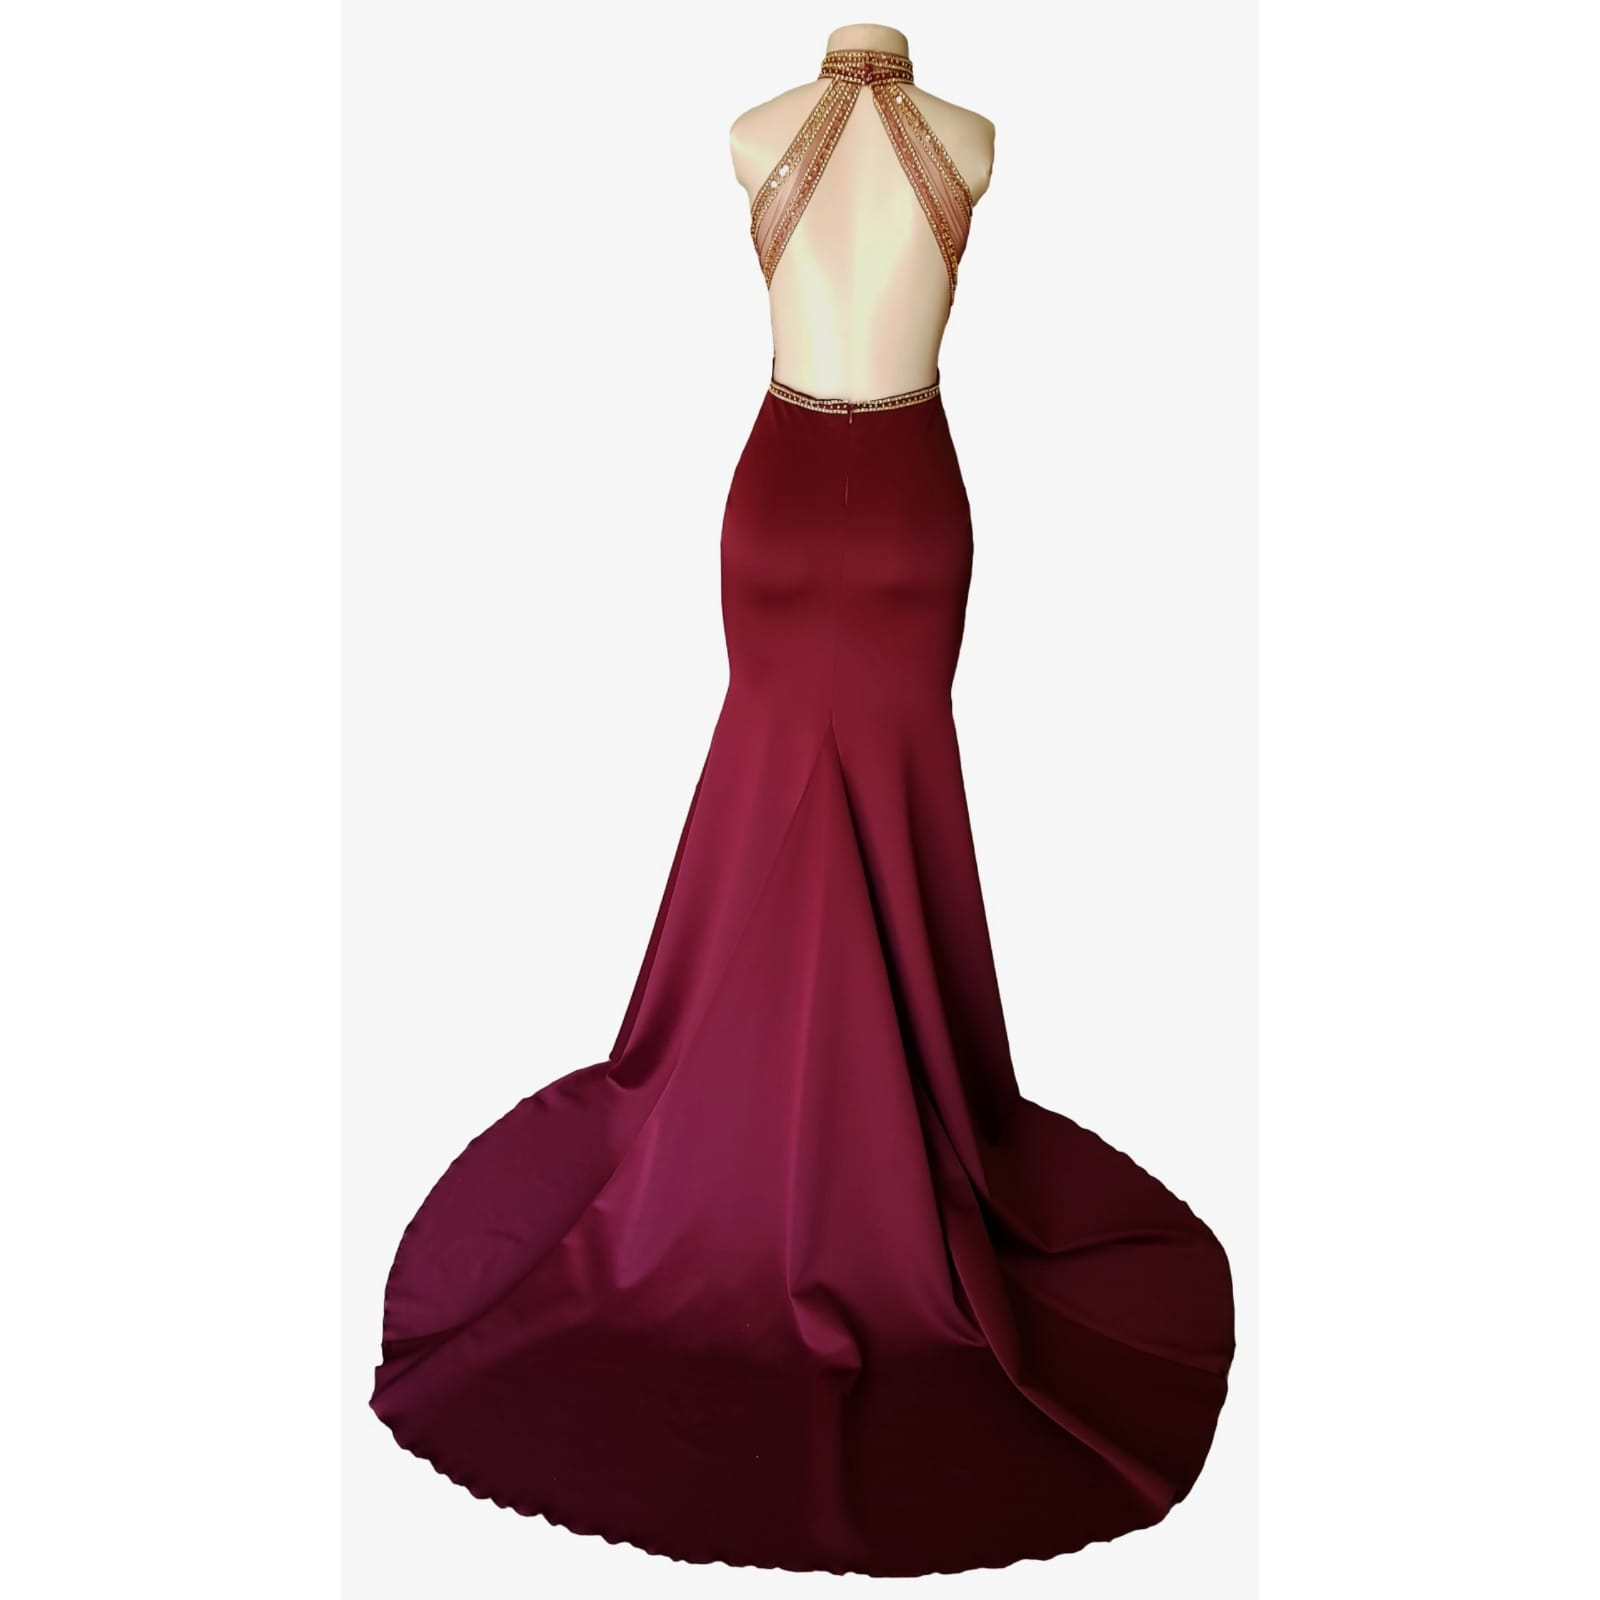 Maroon and gold matric farewell dress with a beaded bodice 12 maroon and gold matric farewell dress with a beaded bodice, low open back with beaded illusion straps. Illusion choker neckline detail with beads and diamante, with a slit and a train.